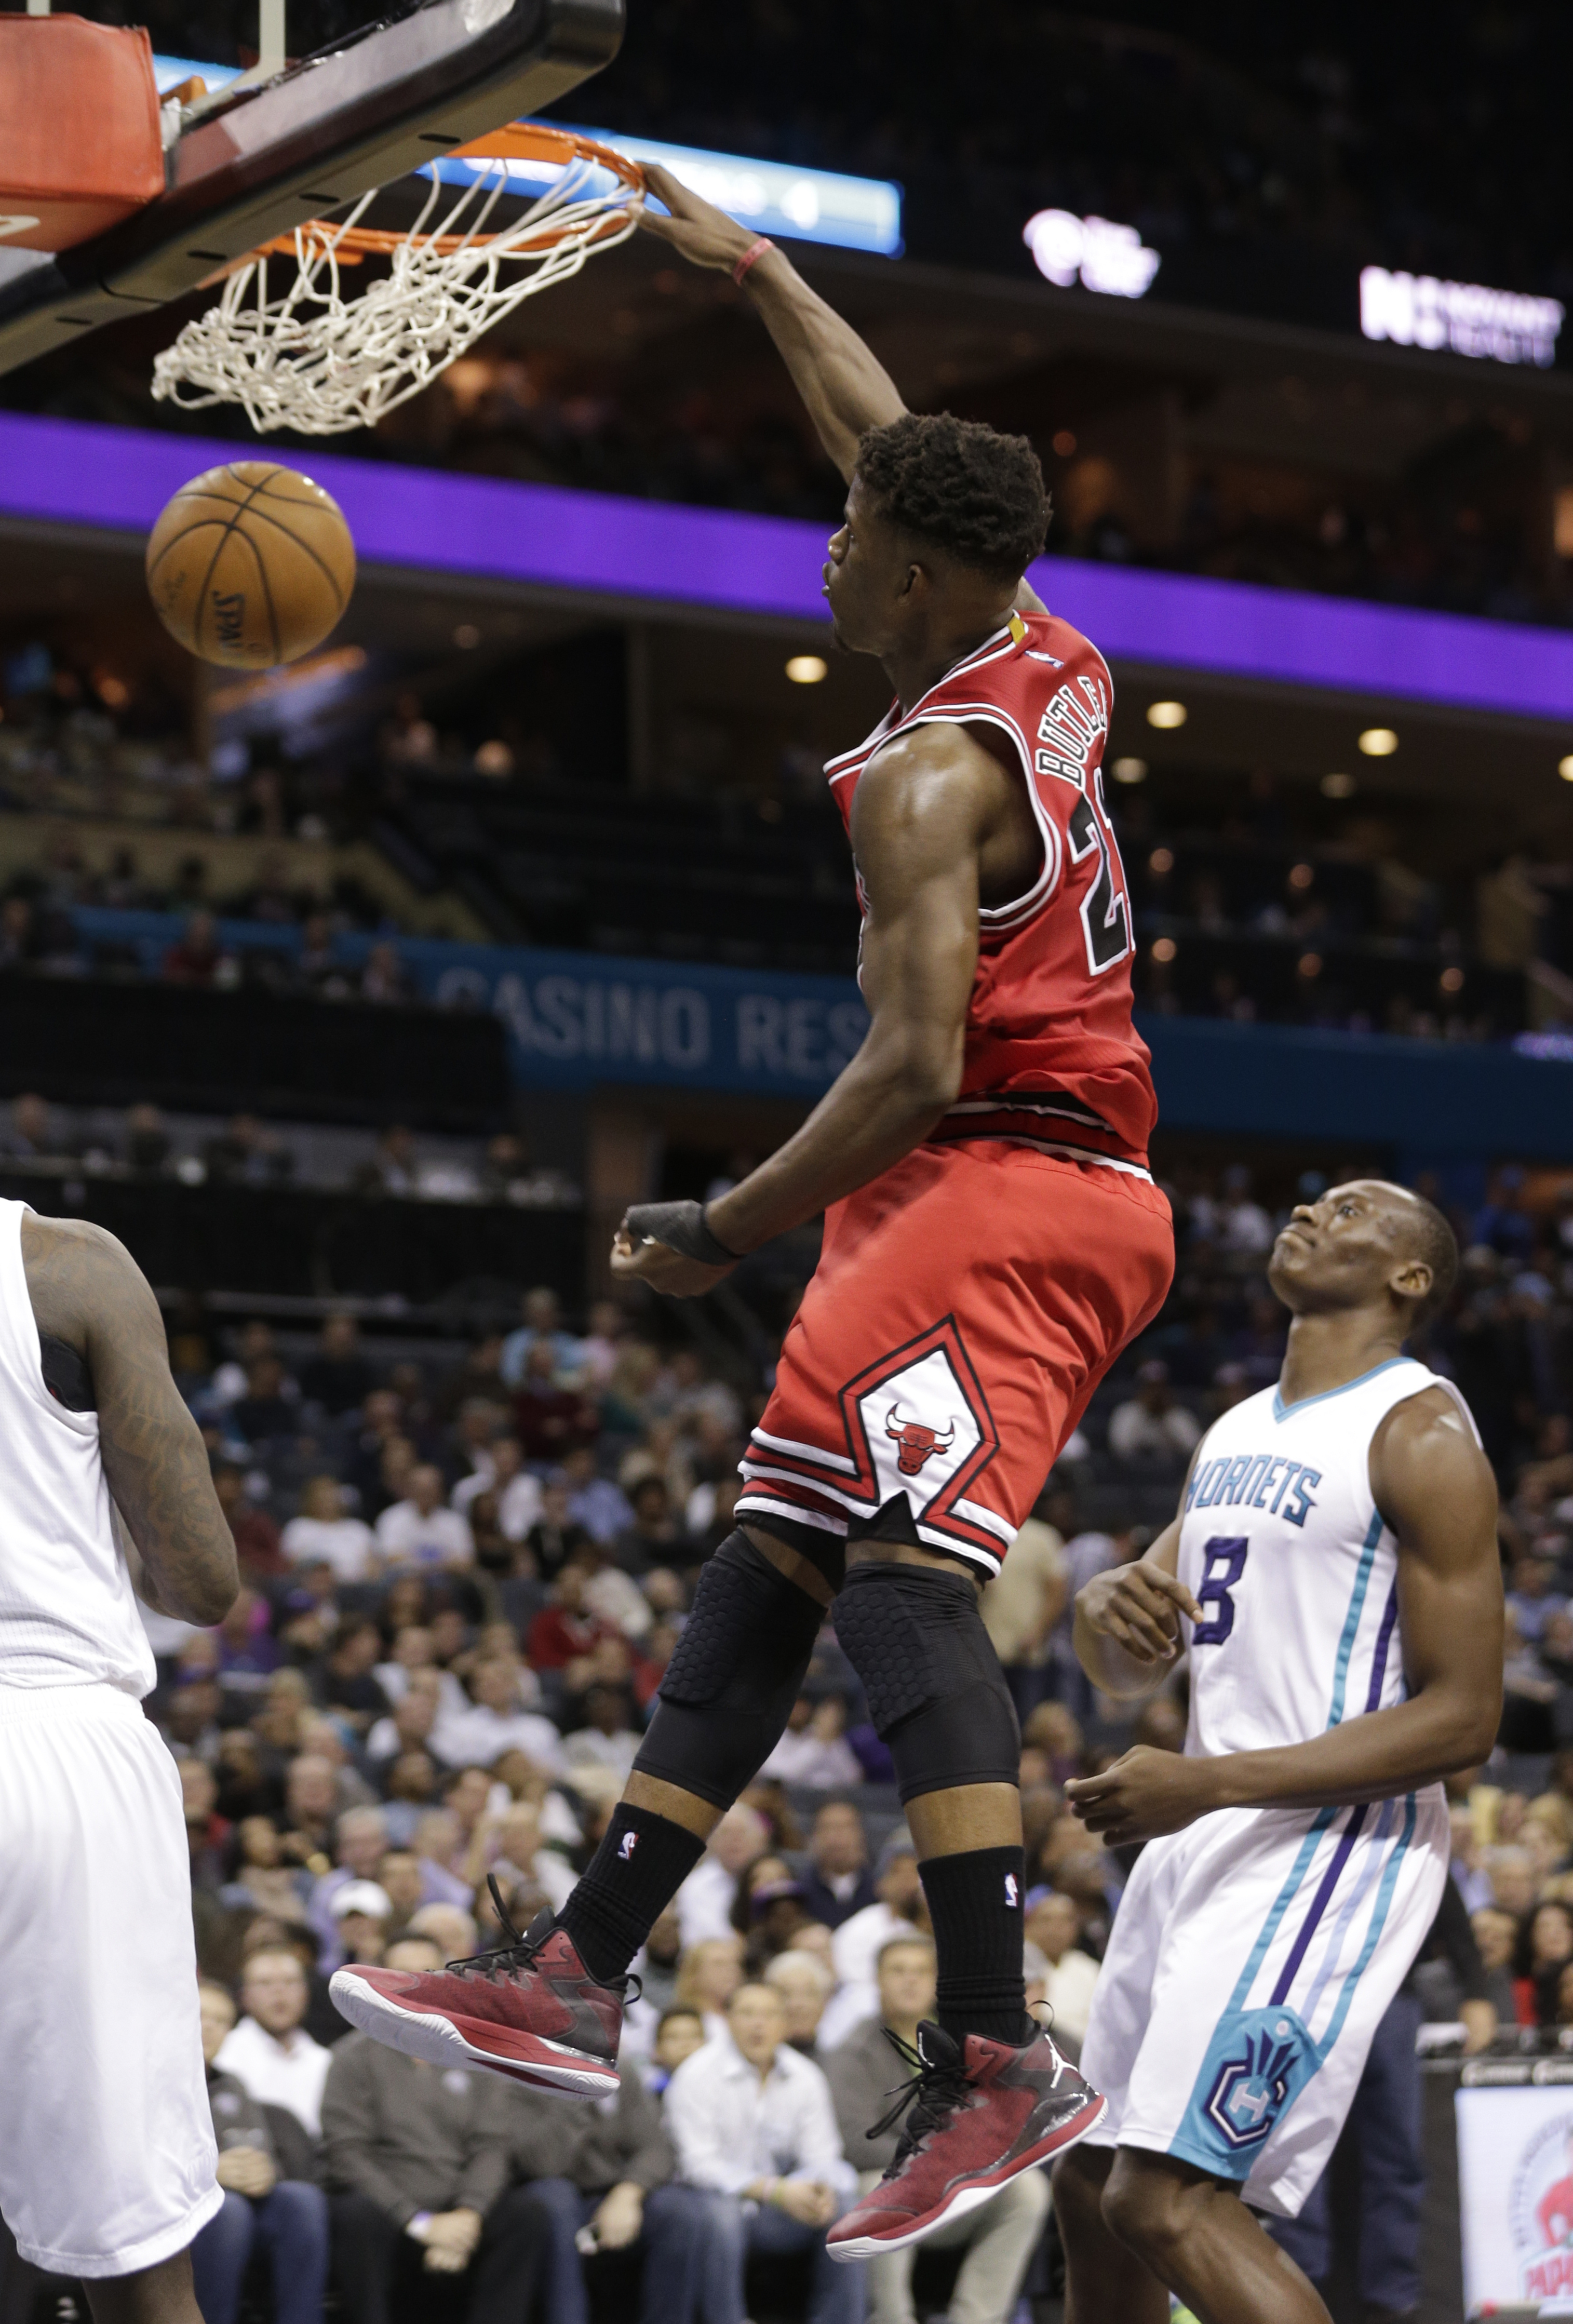 jimmy butler art | Jimmy Butler NBA Wallpaper by skythlee ... |Jimmy Butler Dunk Wallpaper